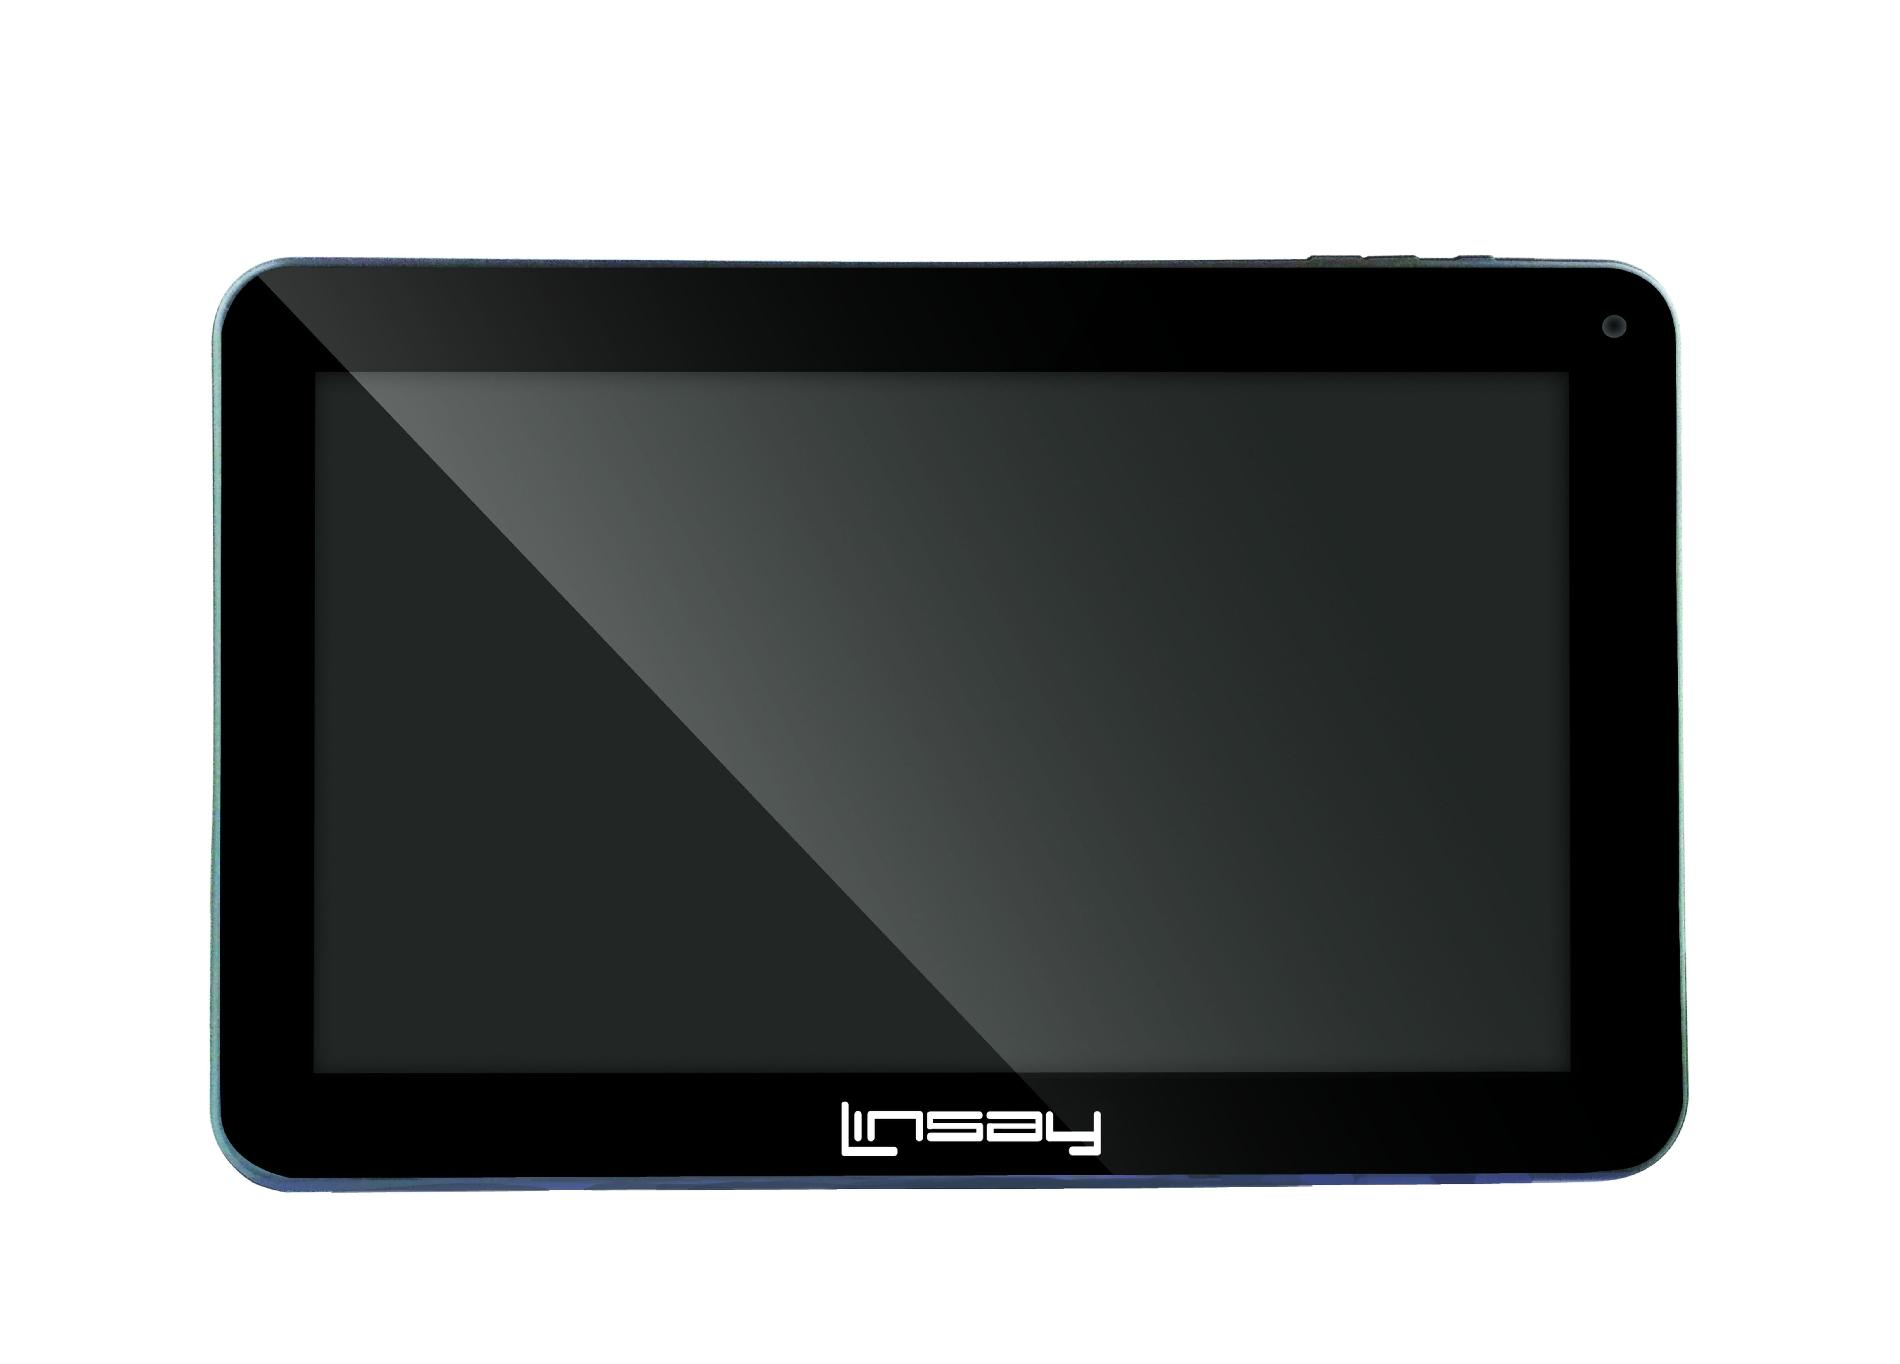 "LINSAY 10.1"" NEW Capacitive Tablet 1024 x 600 HD w/ Google Android Jelly Bean 4.1"